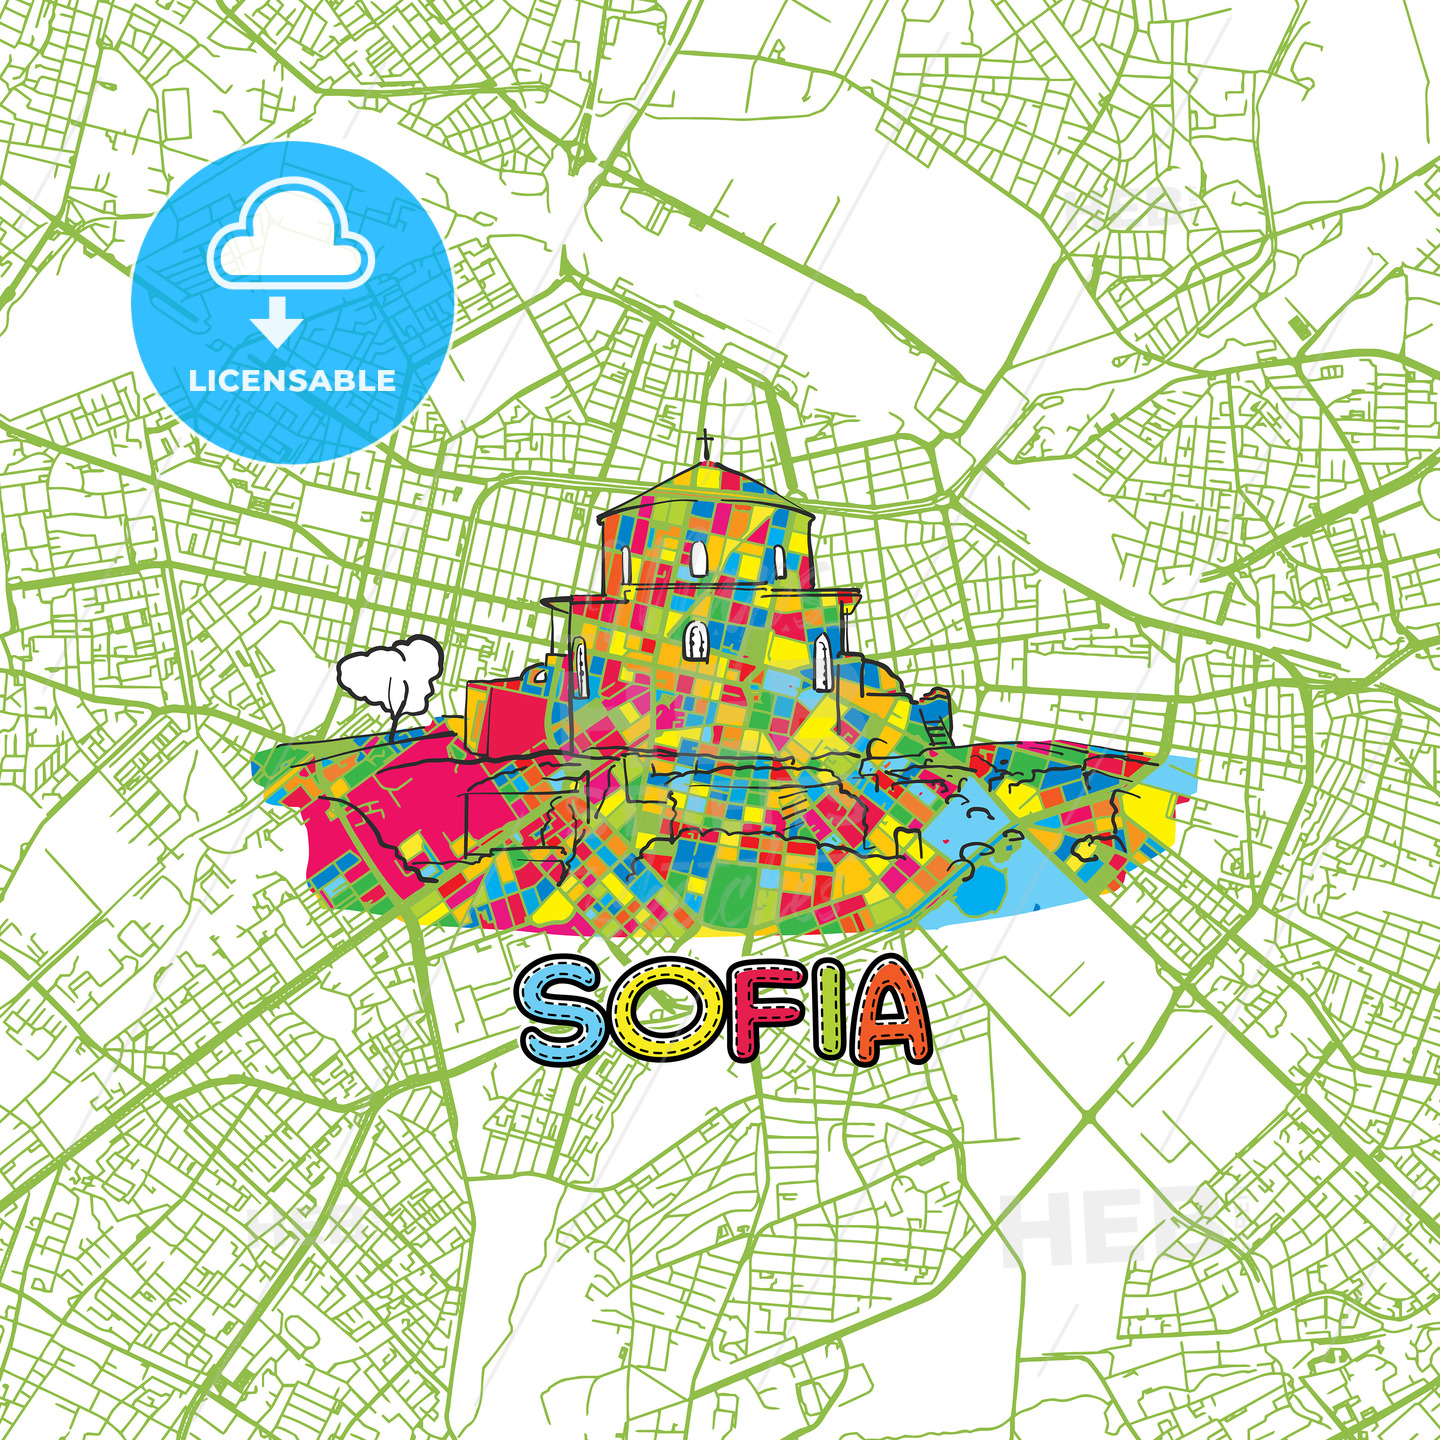 Sofia Travel Art Map - HEBSTREITS